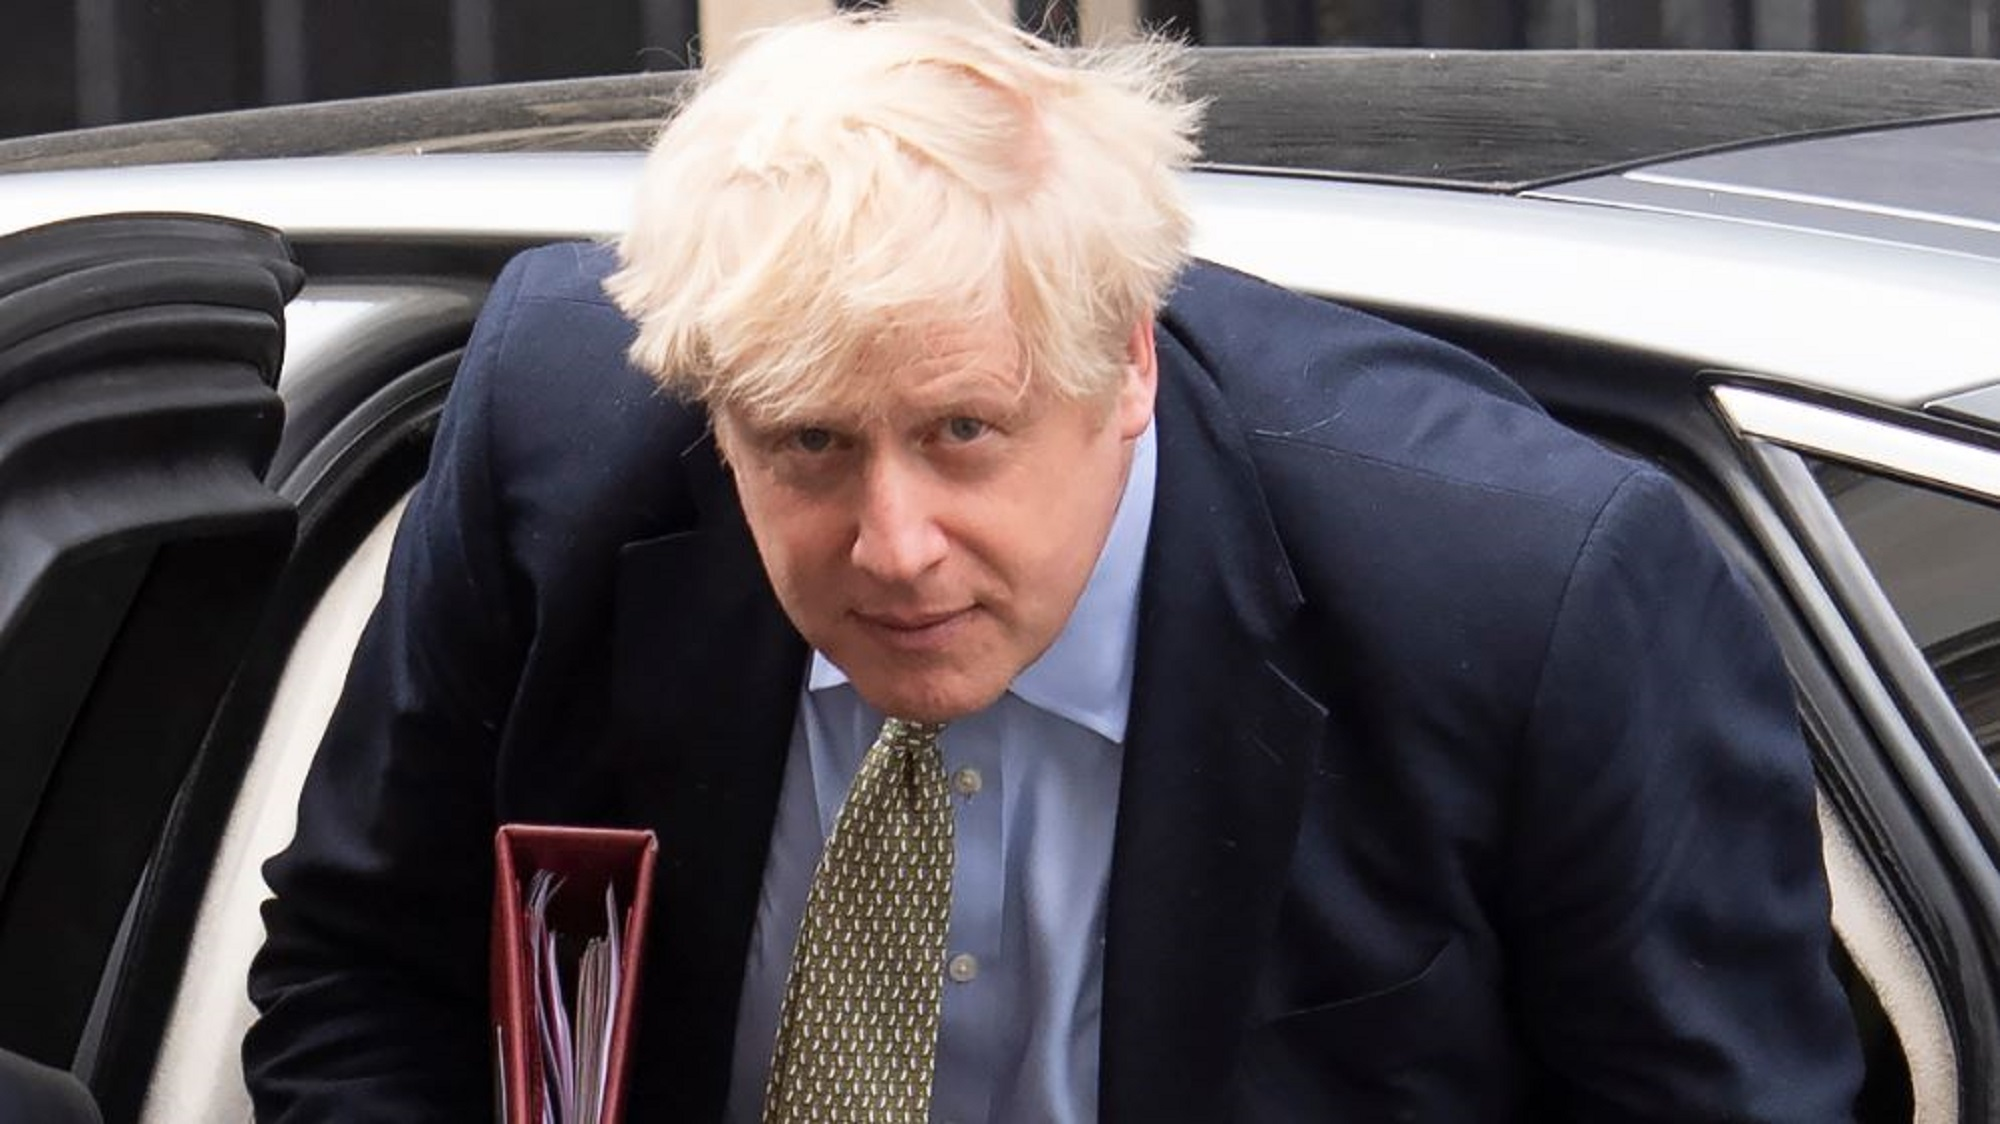 Coronavirus: Prime Minister Boris Johnson pledges rise in COVID-19 testing following fierce criticism